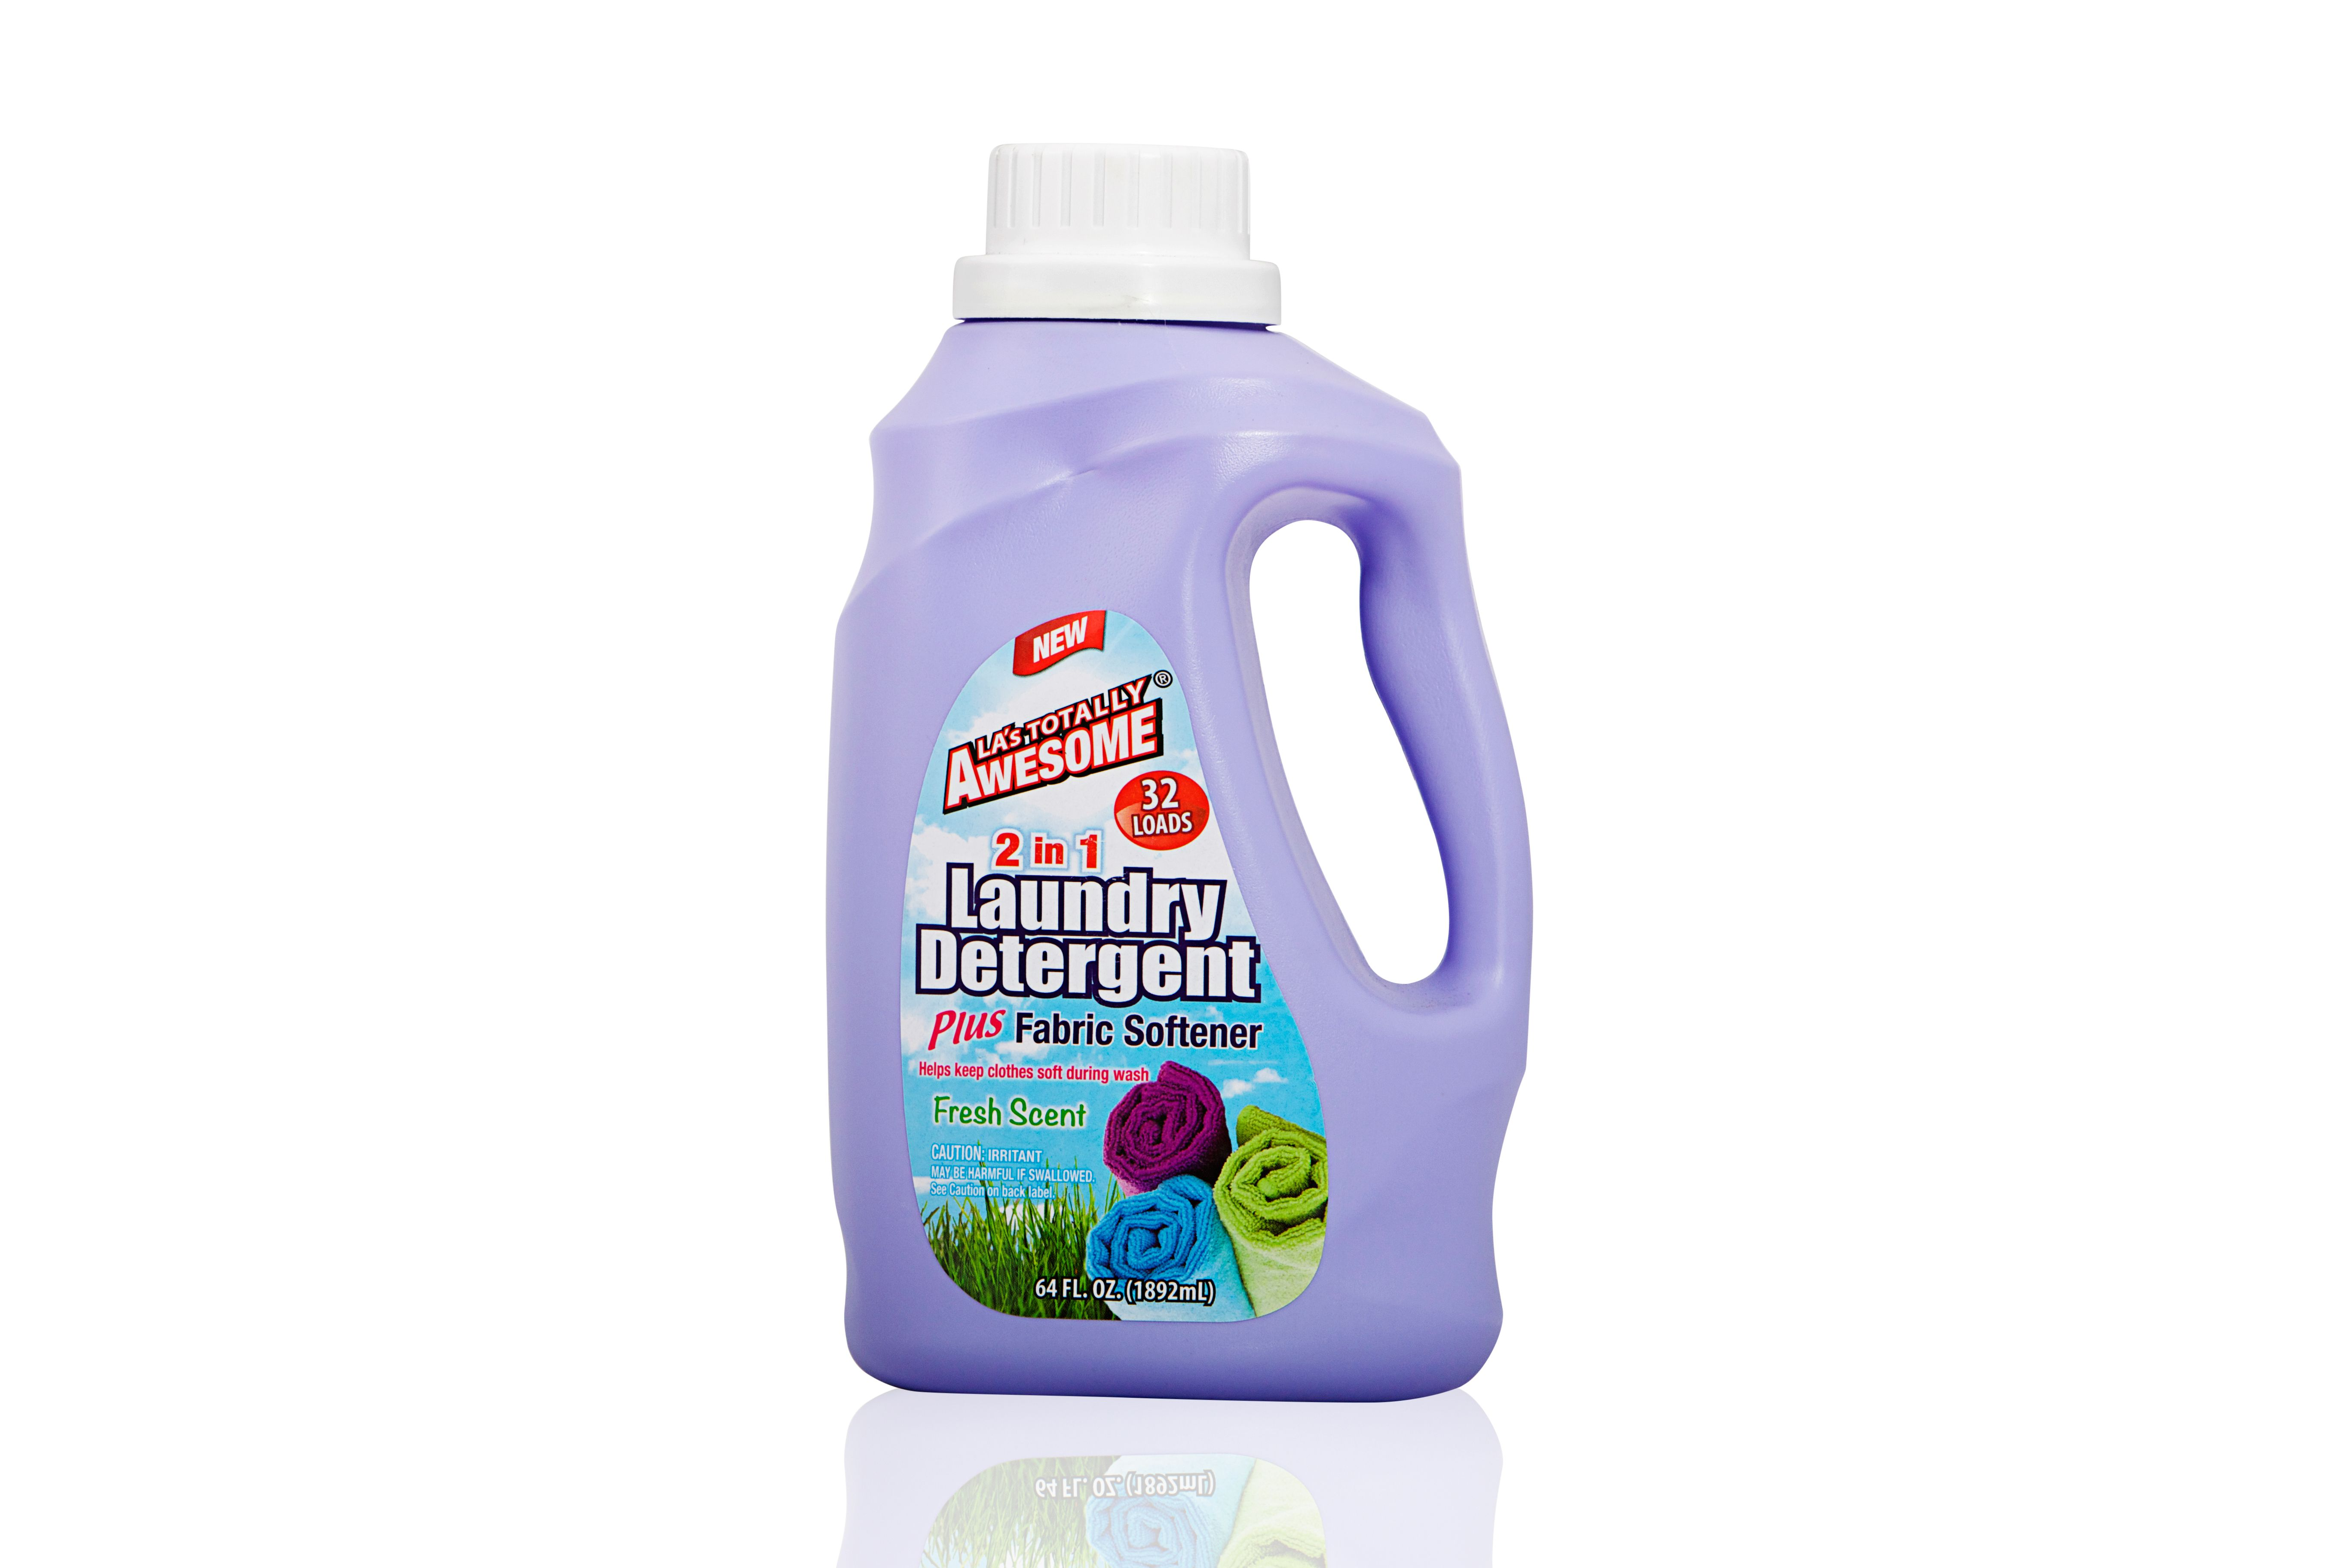 Awesome Detergent And Fabric Softner Fabric Softner Detergent